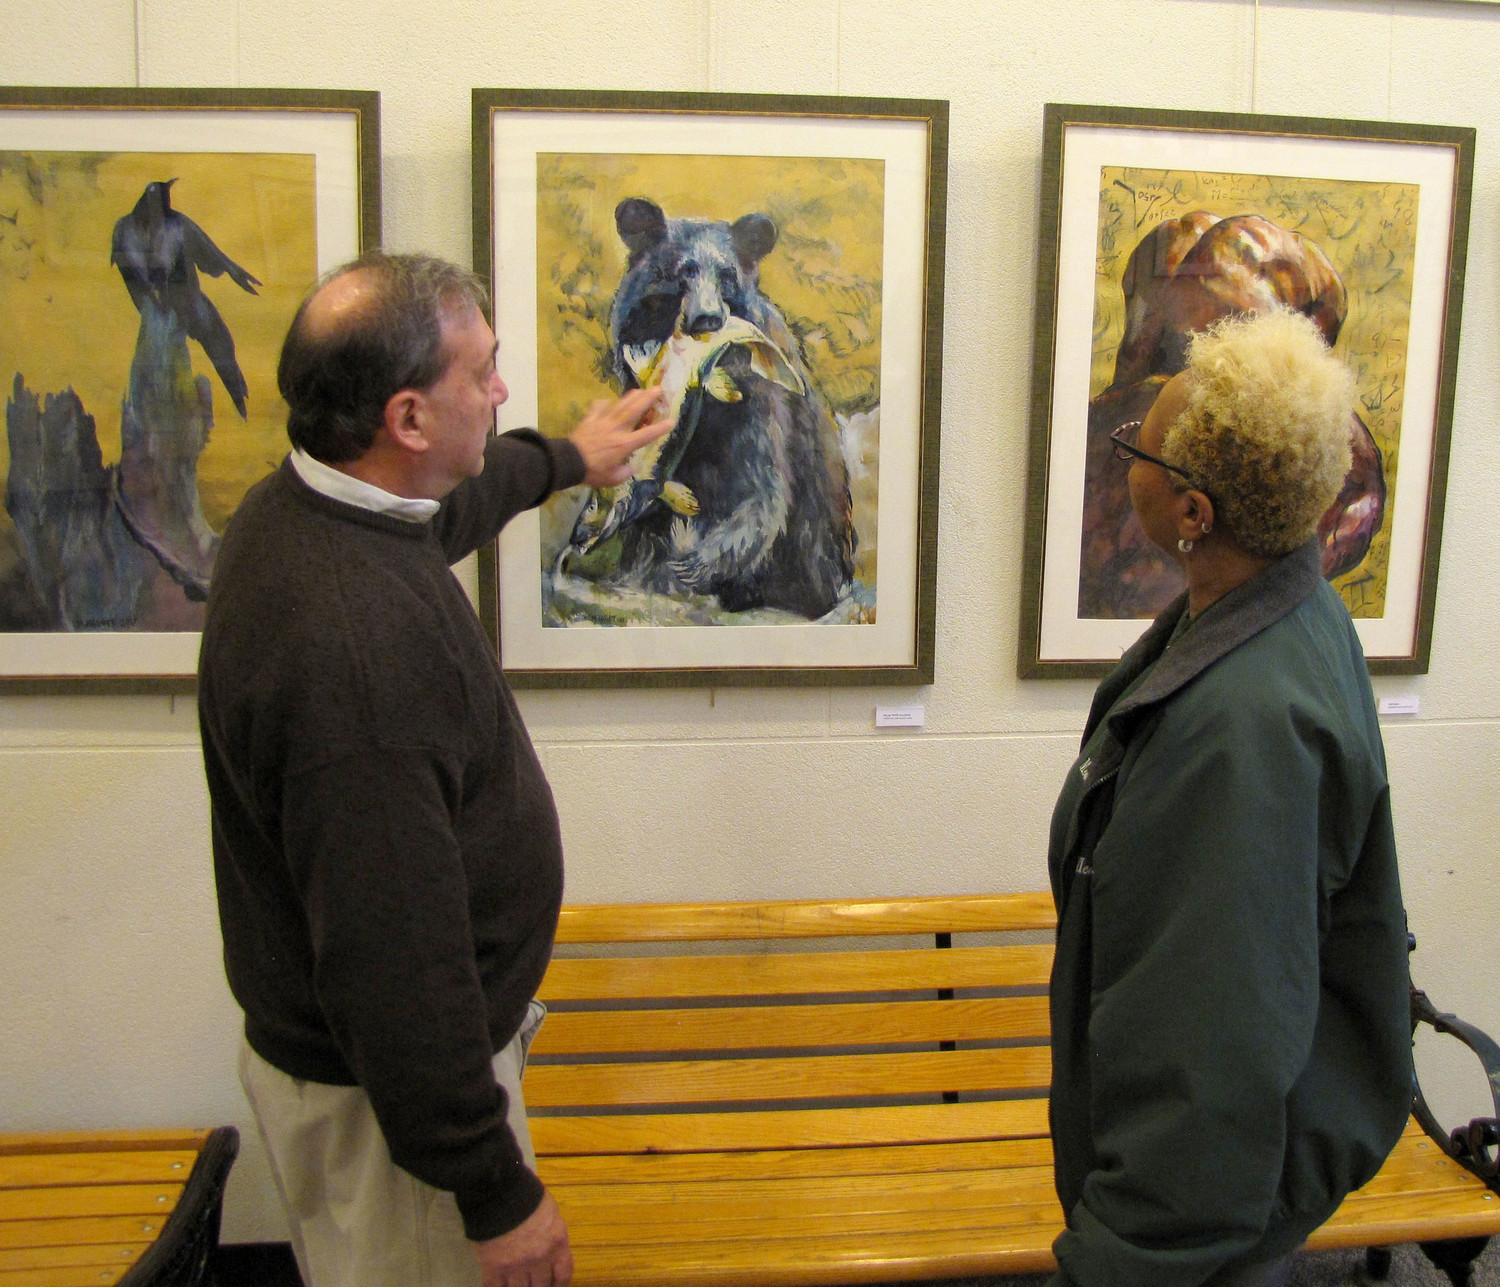 Marc Josloff, left, talked about his paintings with Freeporter, Peggy Bickett at the Freeport Memorial Library on Jan. 8.